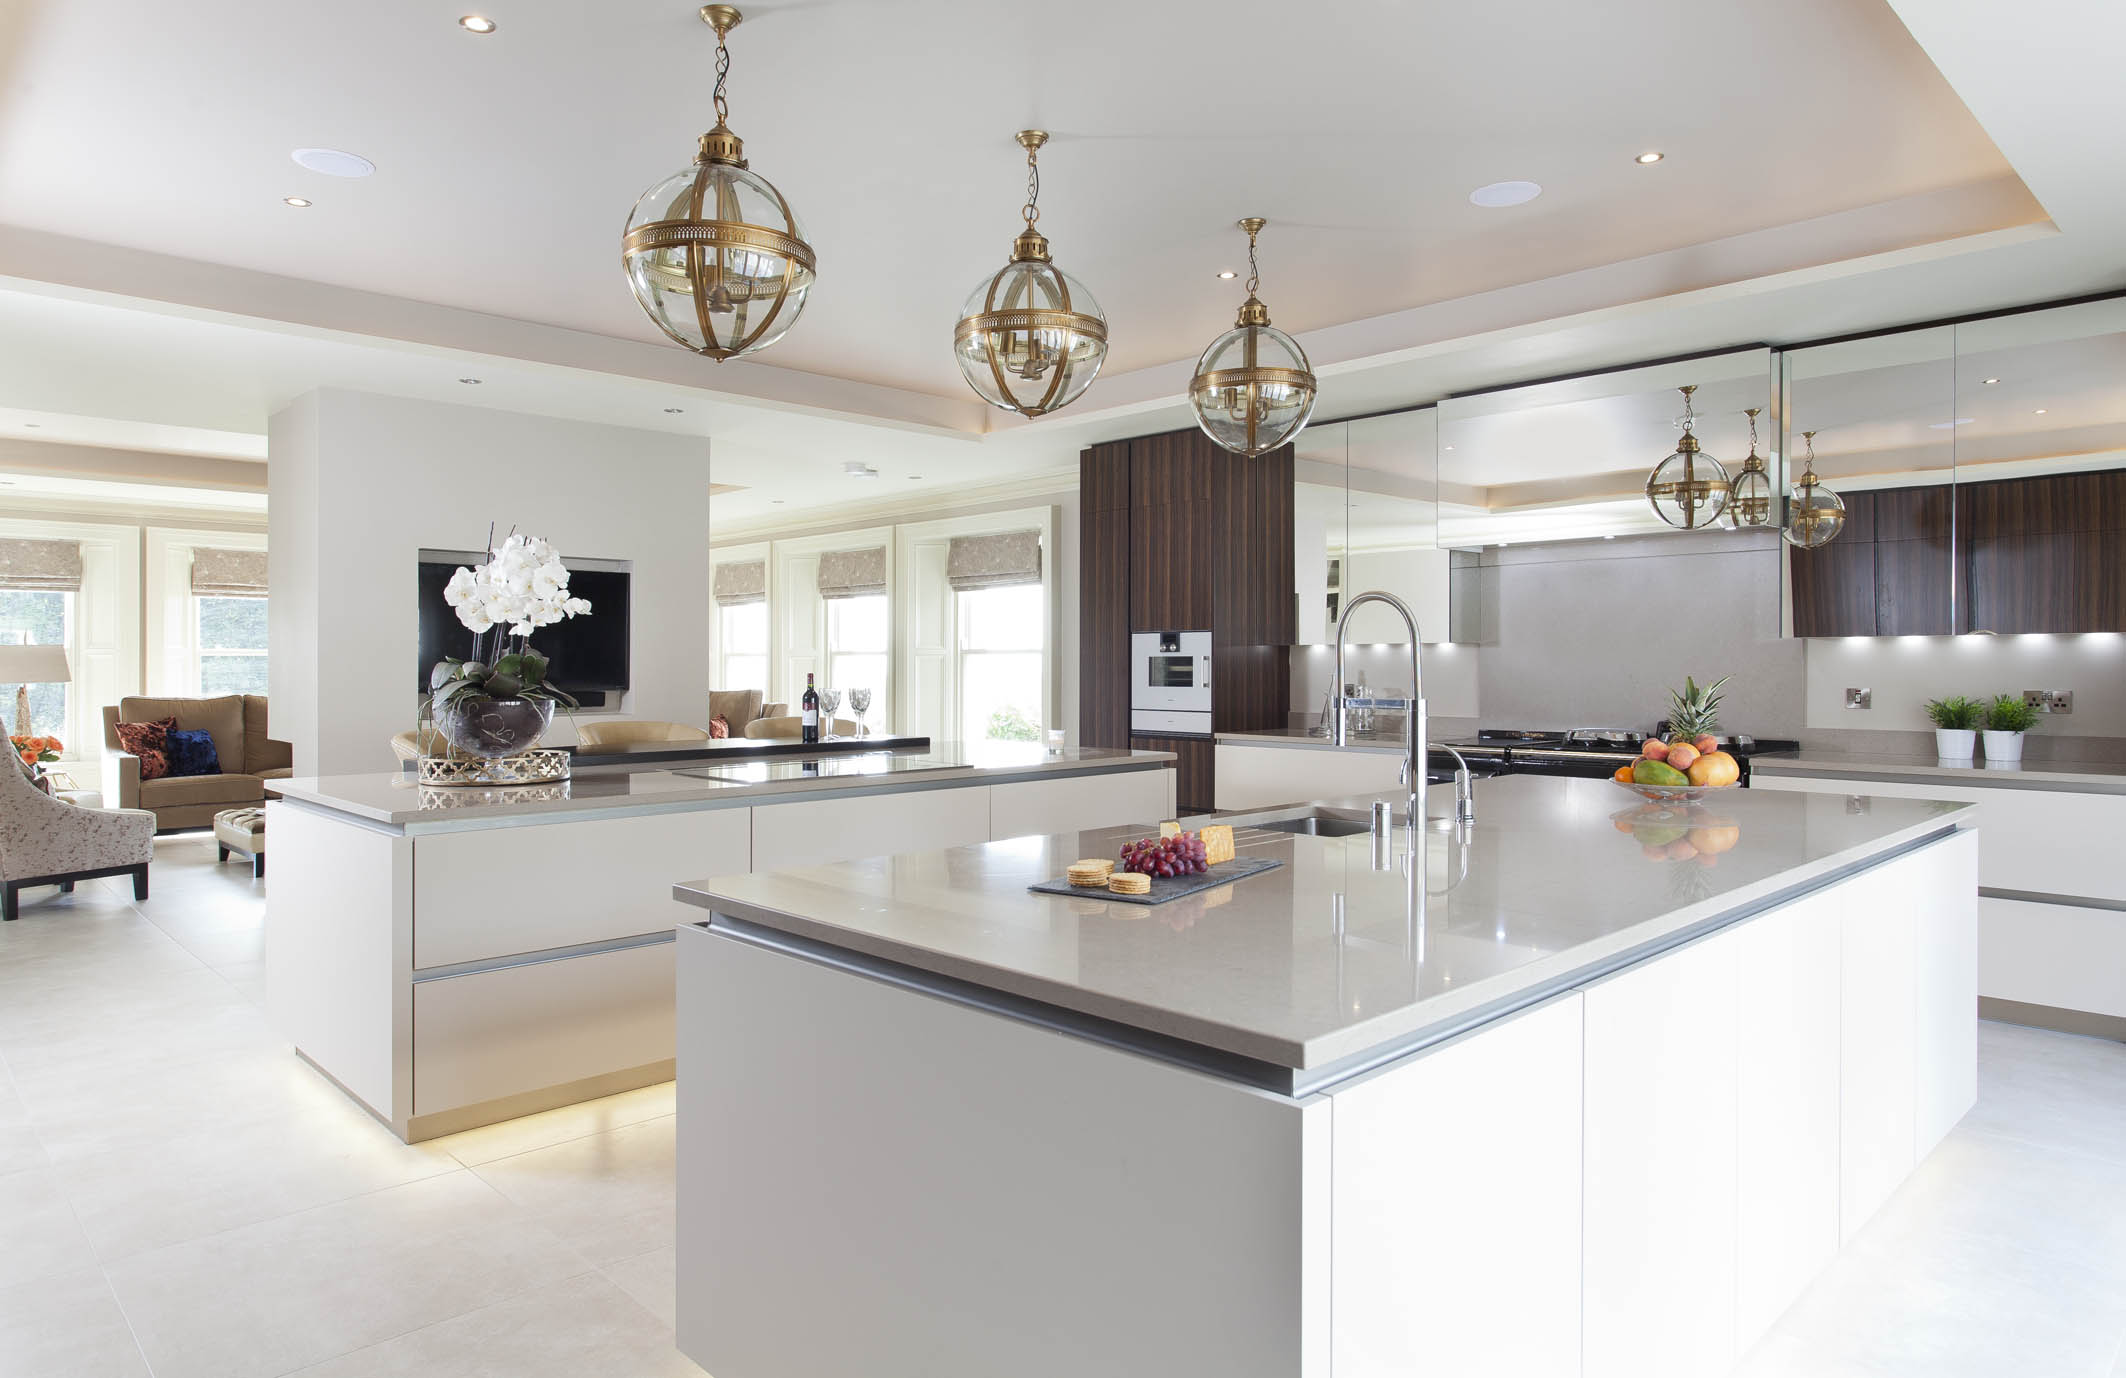 kitchen design ideas ireland handmade kitchens ireland luxury handpainted kitchens in 687